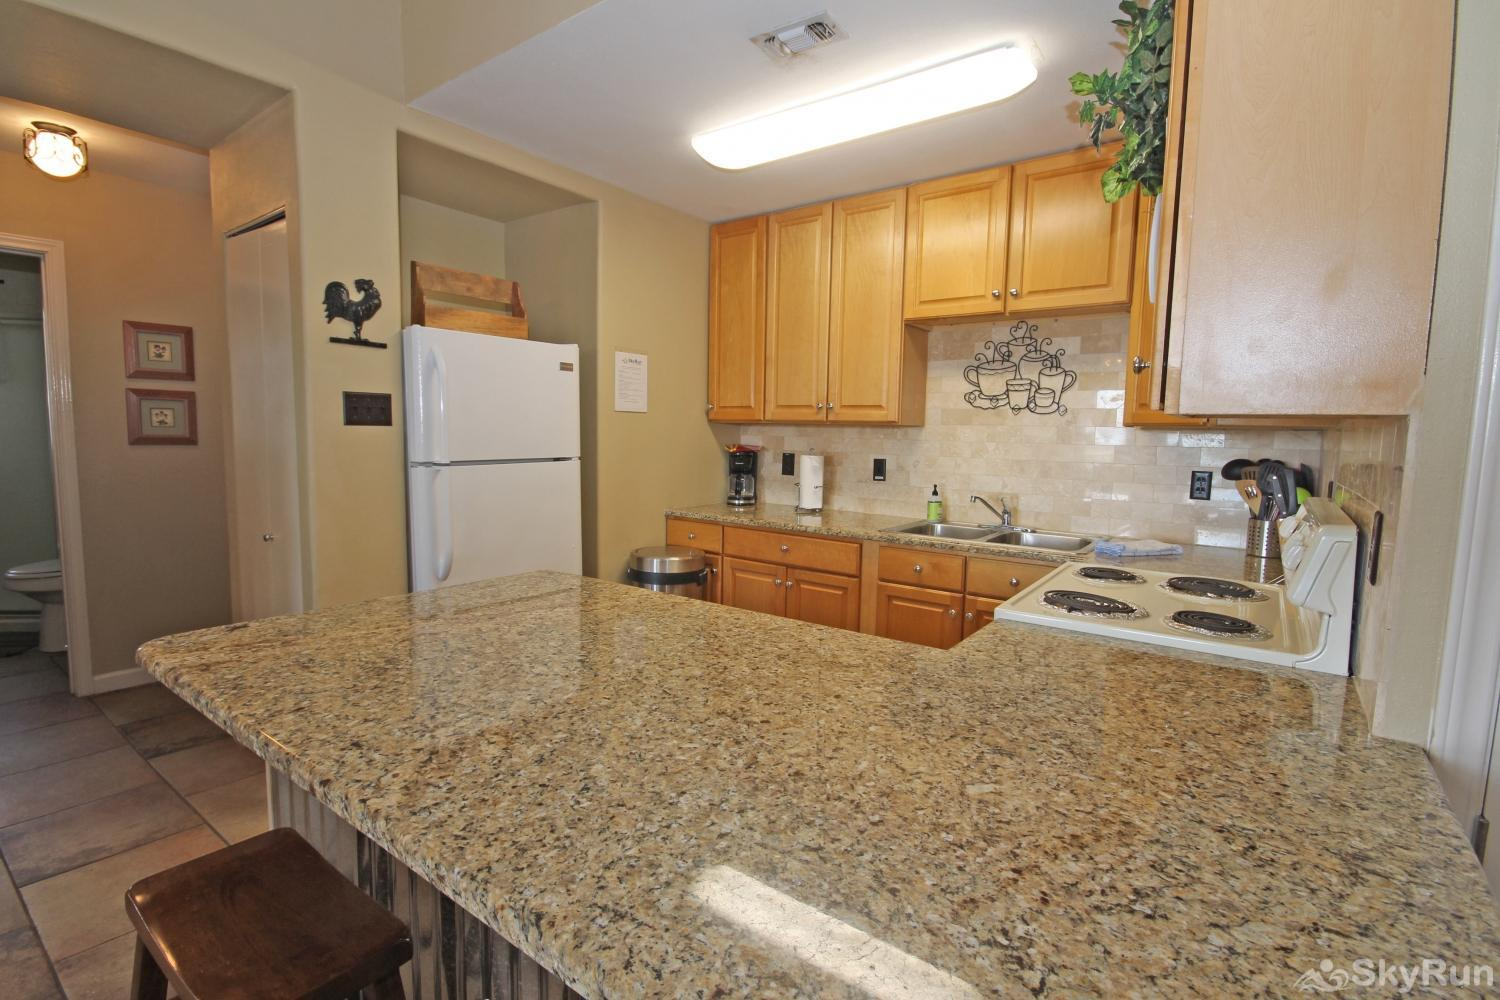 LAKEPOINT LOOKOUT Recently Remodeled Kitchen with Granite Countertops